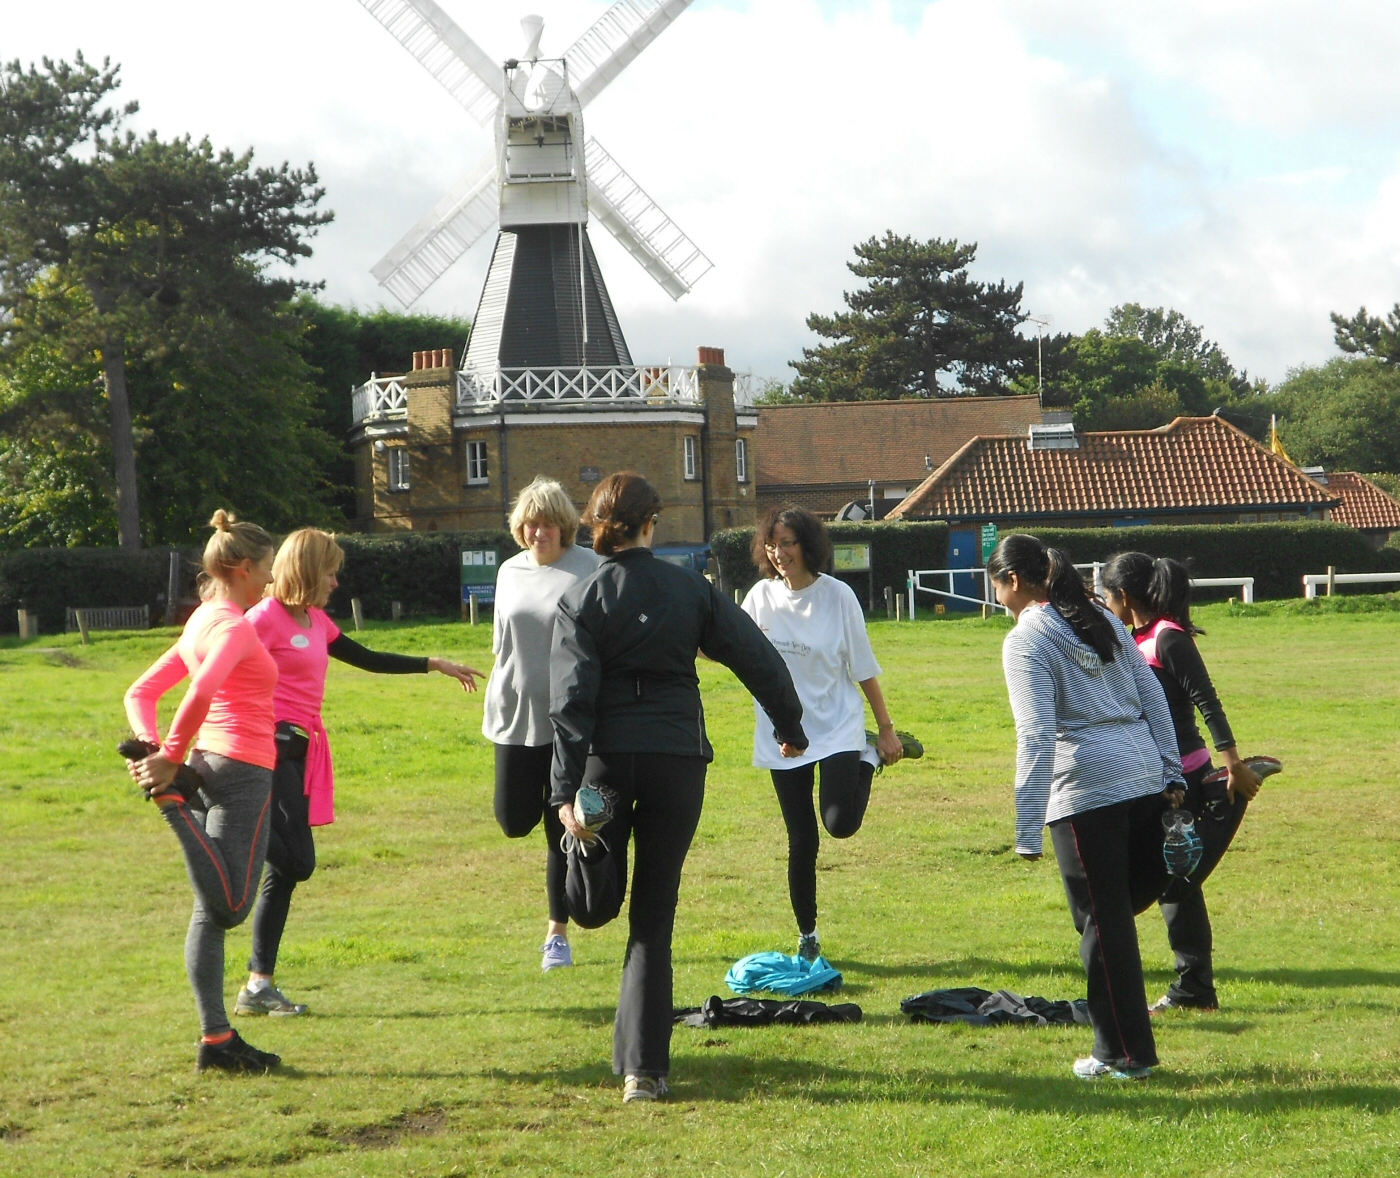 4-beginner-runners-stretching-outside-the-windmill-cafe